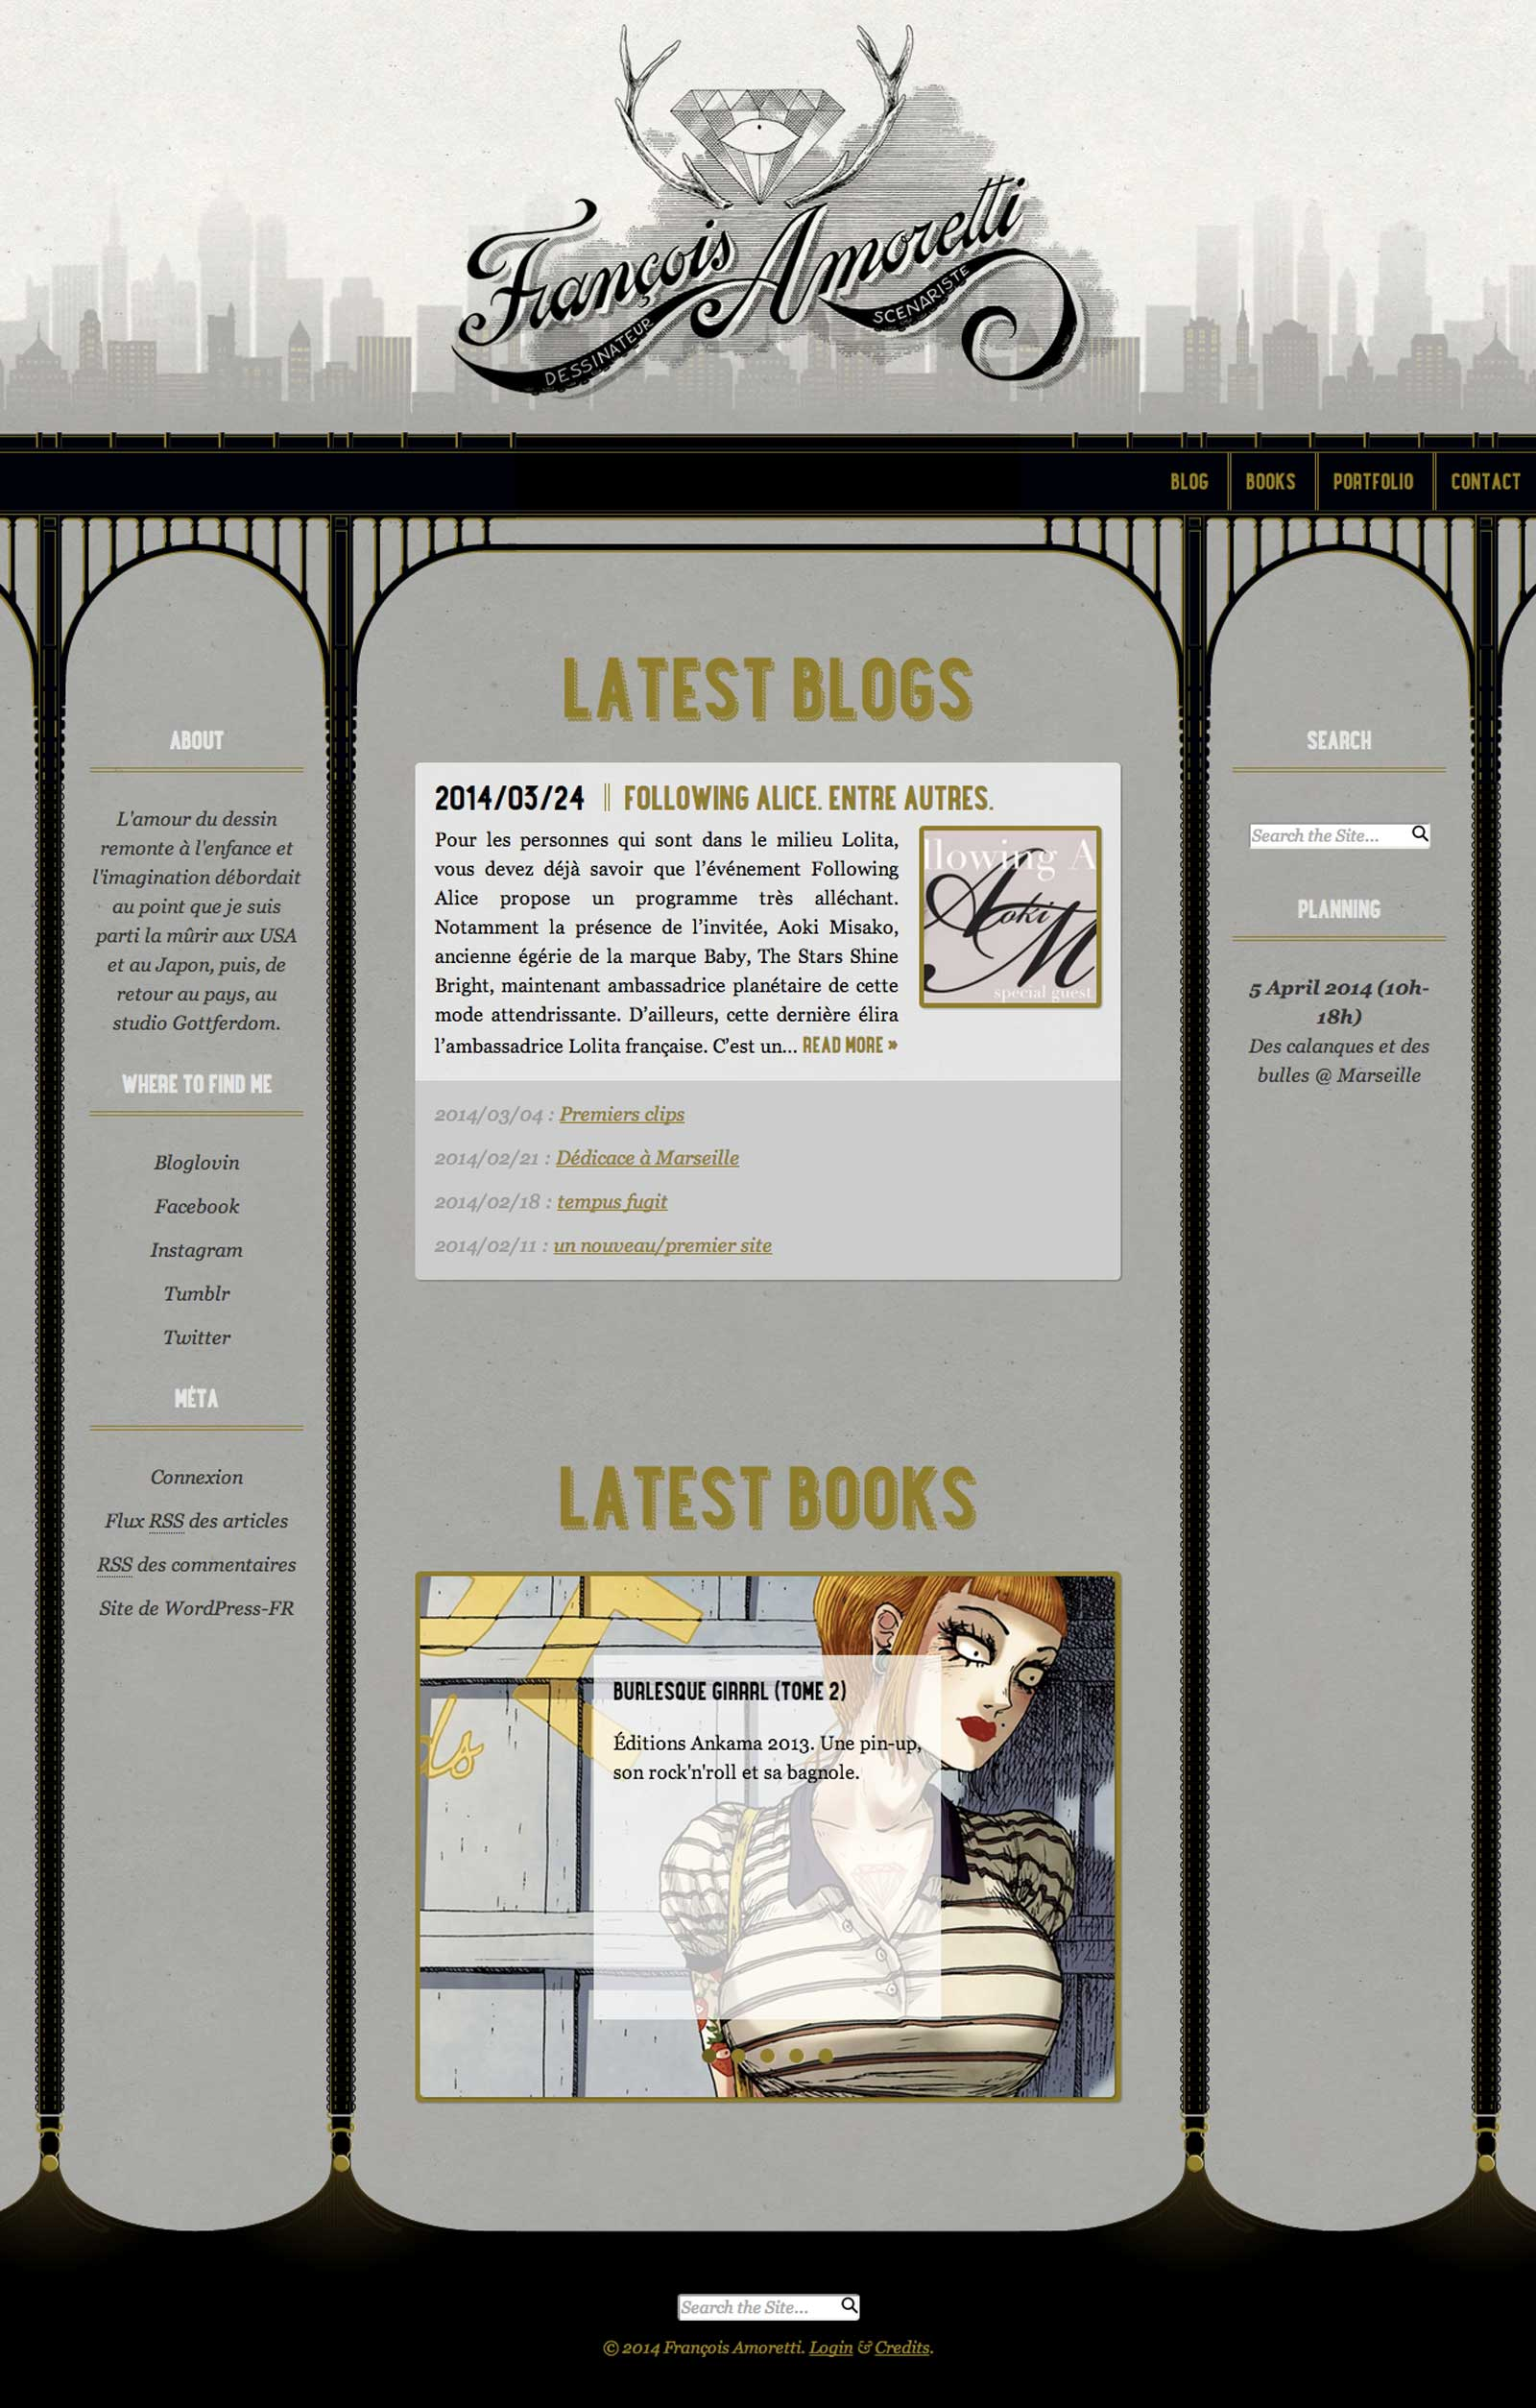 Home page of francoisamoretti.com, an illustration and comic books portfolio for french, aix-en-provence based illustrator and writer François Amoretti